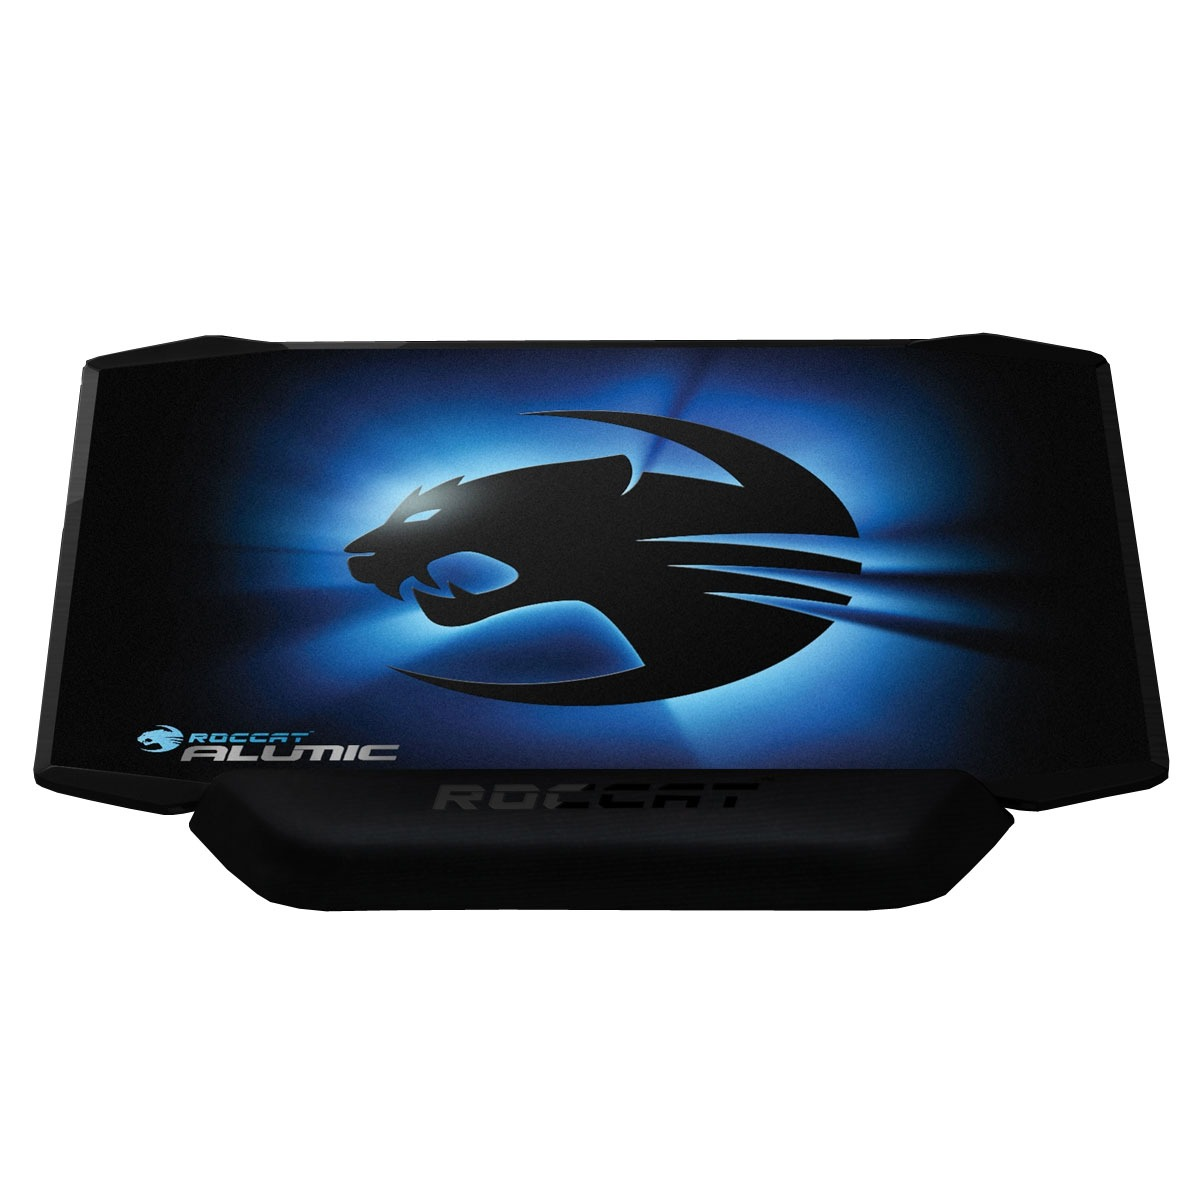 roccat alumic tapis de souris roccat sur ldlc. Black Bedroom Furniture Sets. Home Design Ideas